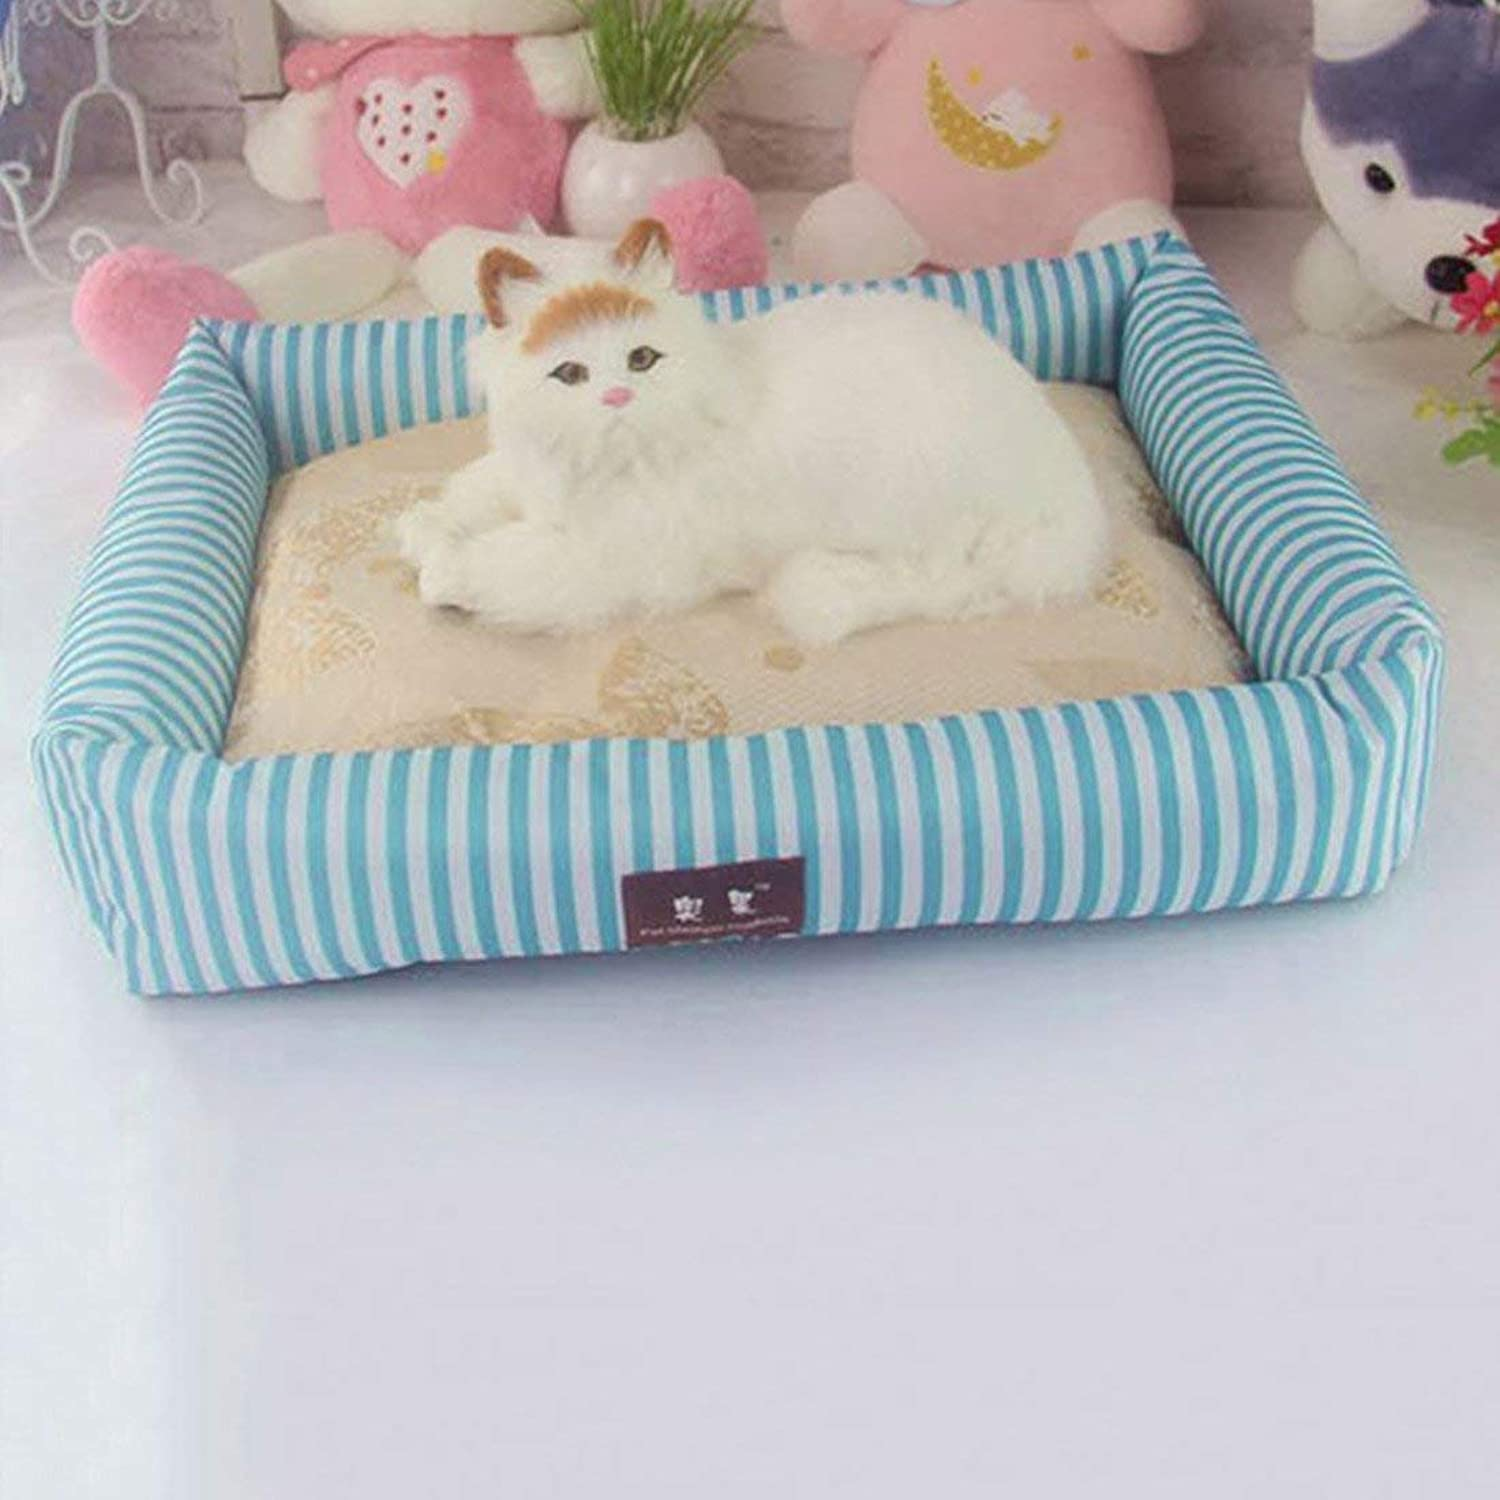 IANXI Home Summer Dog Bed Pet Cooling Sleeping Mat Cat Bed Cushion bluee XL for Cat Dog